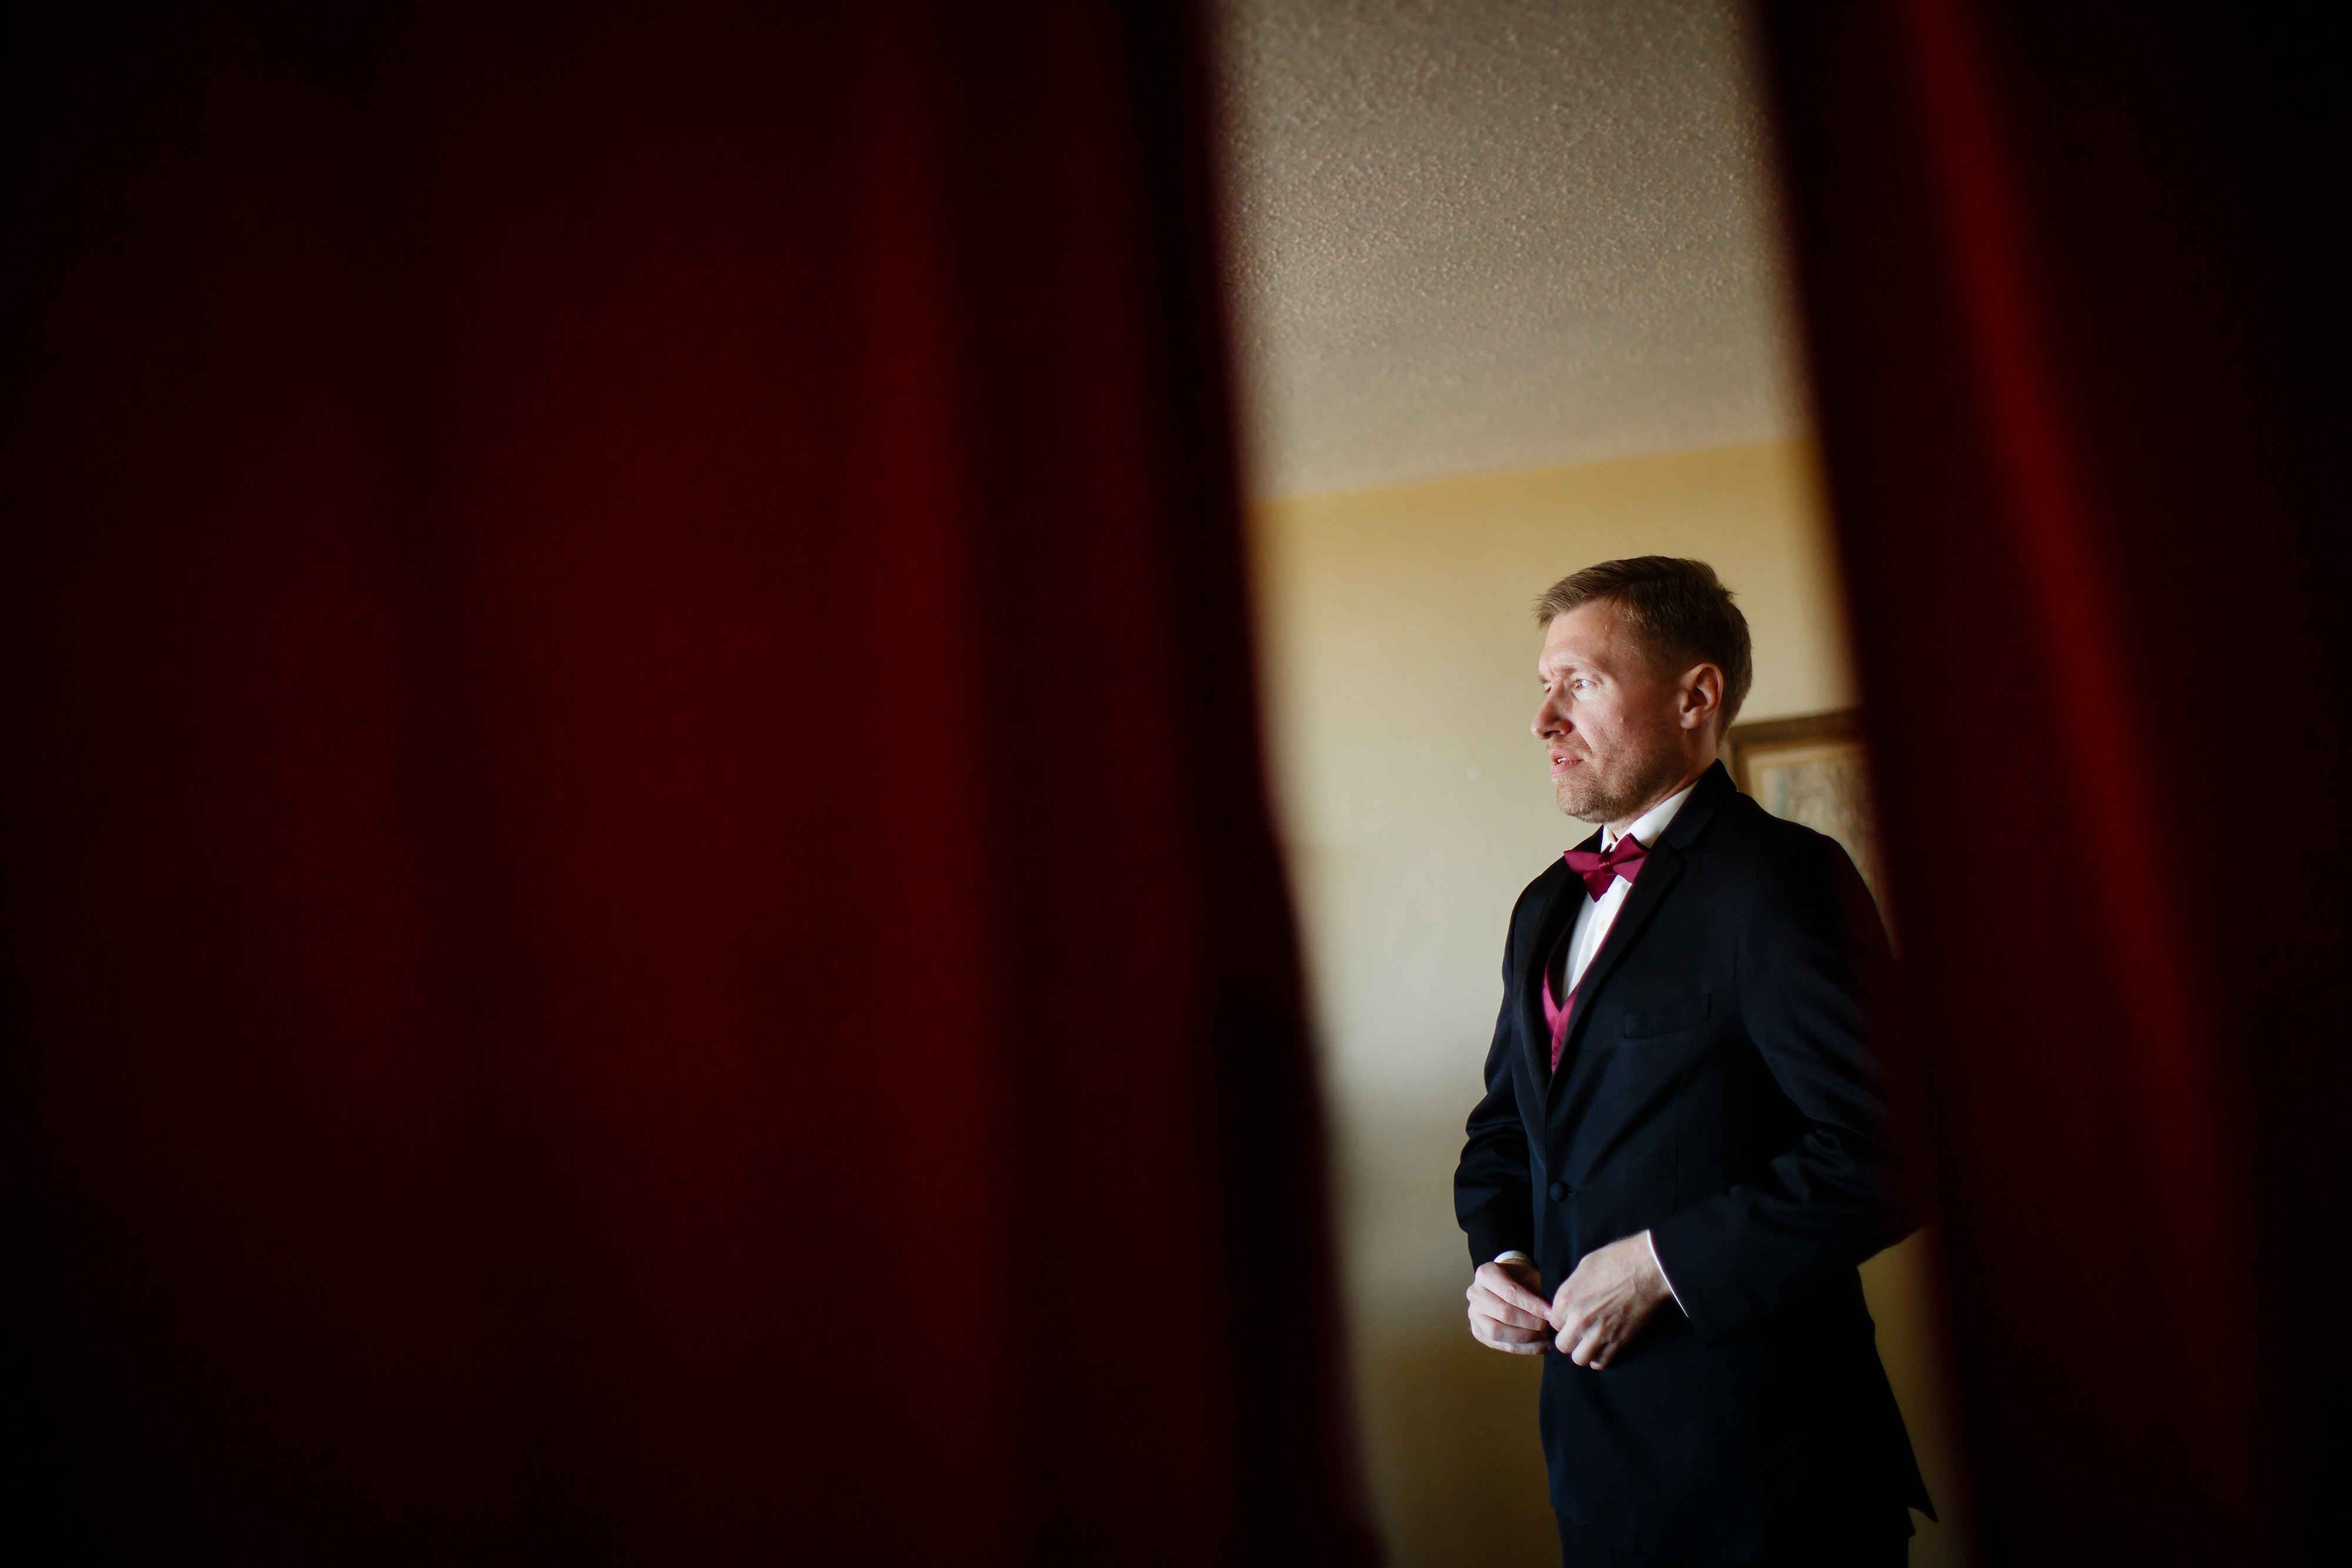 Ryan adjusts his jacket before his wedding at the Westin in Denver